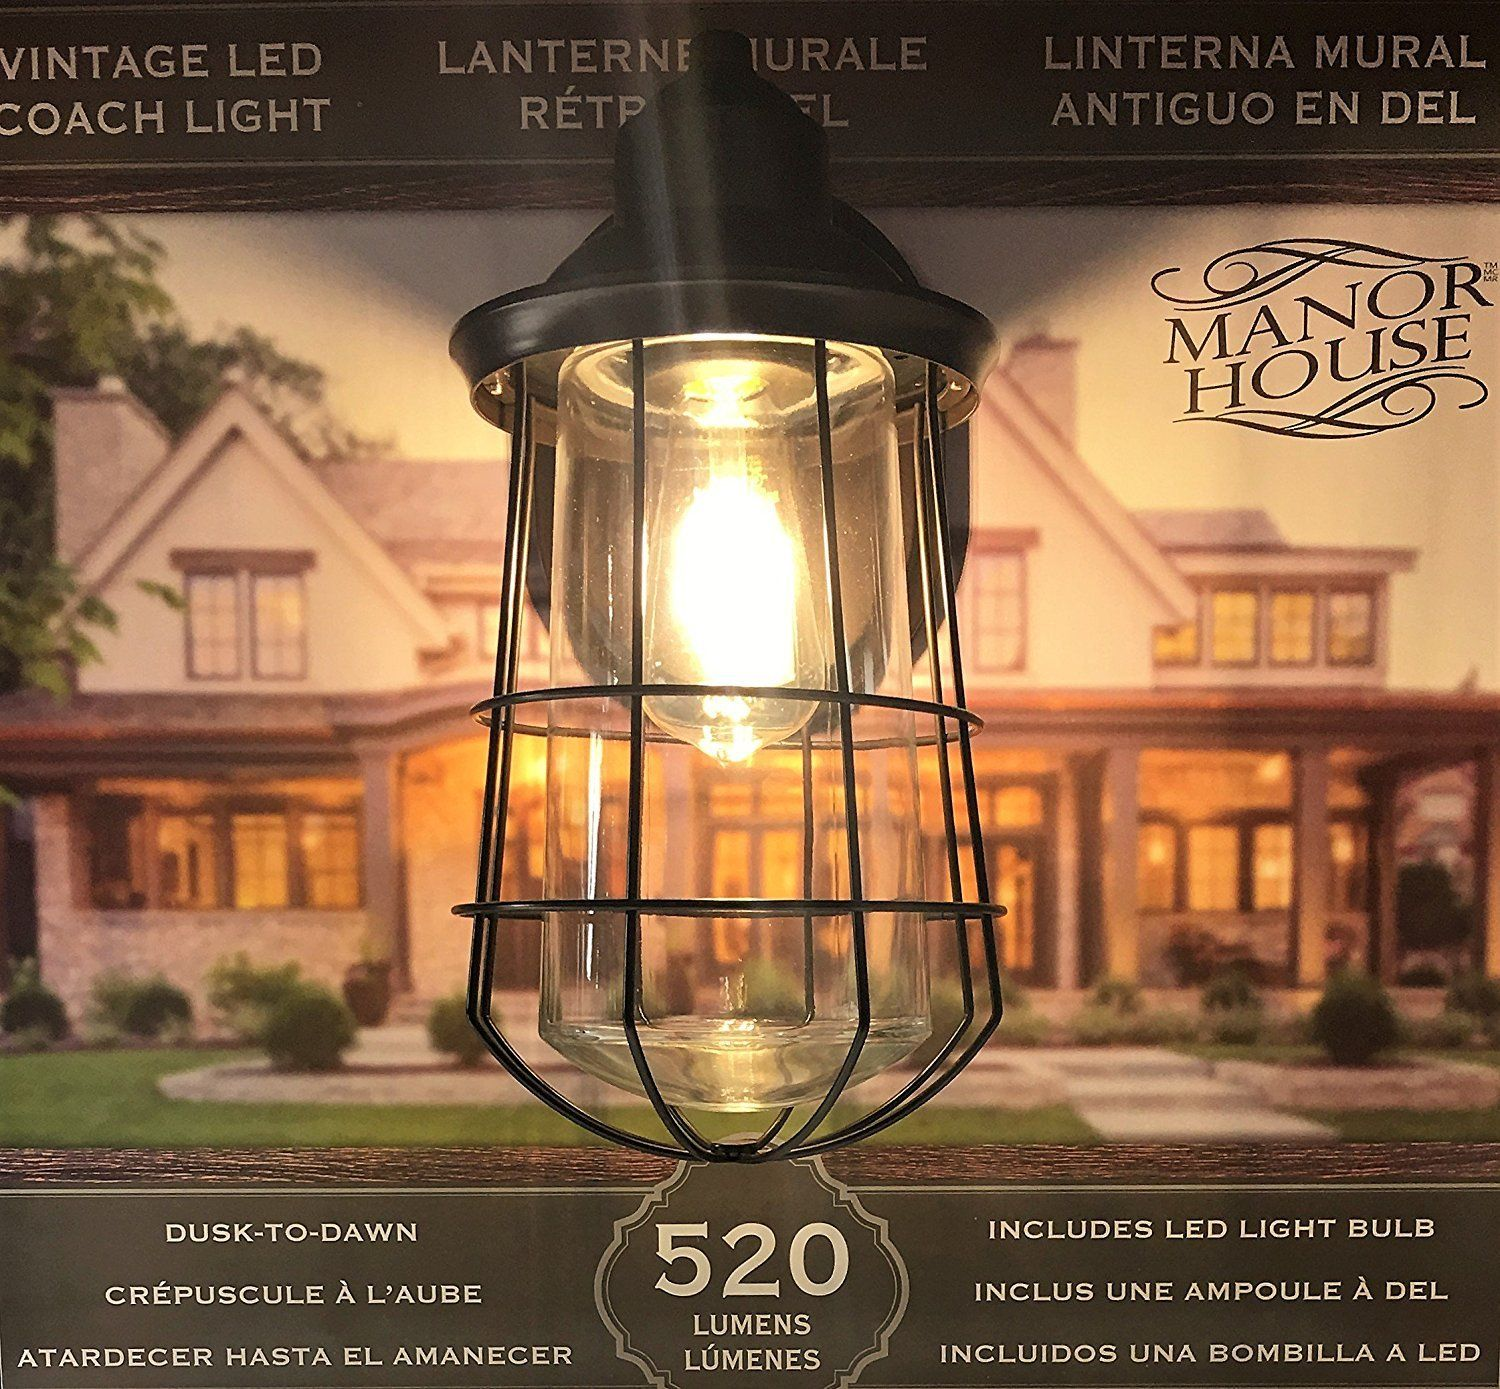 Manor House Vintage Led Coach Patio Porch Light Check This Awesome Product By Going To The Link Porch Lighting Outdoor Light Fixtures Outdoor Lighting Design